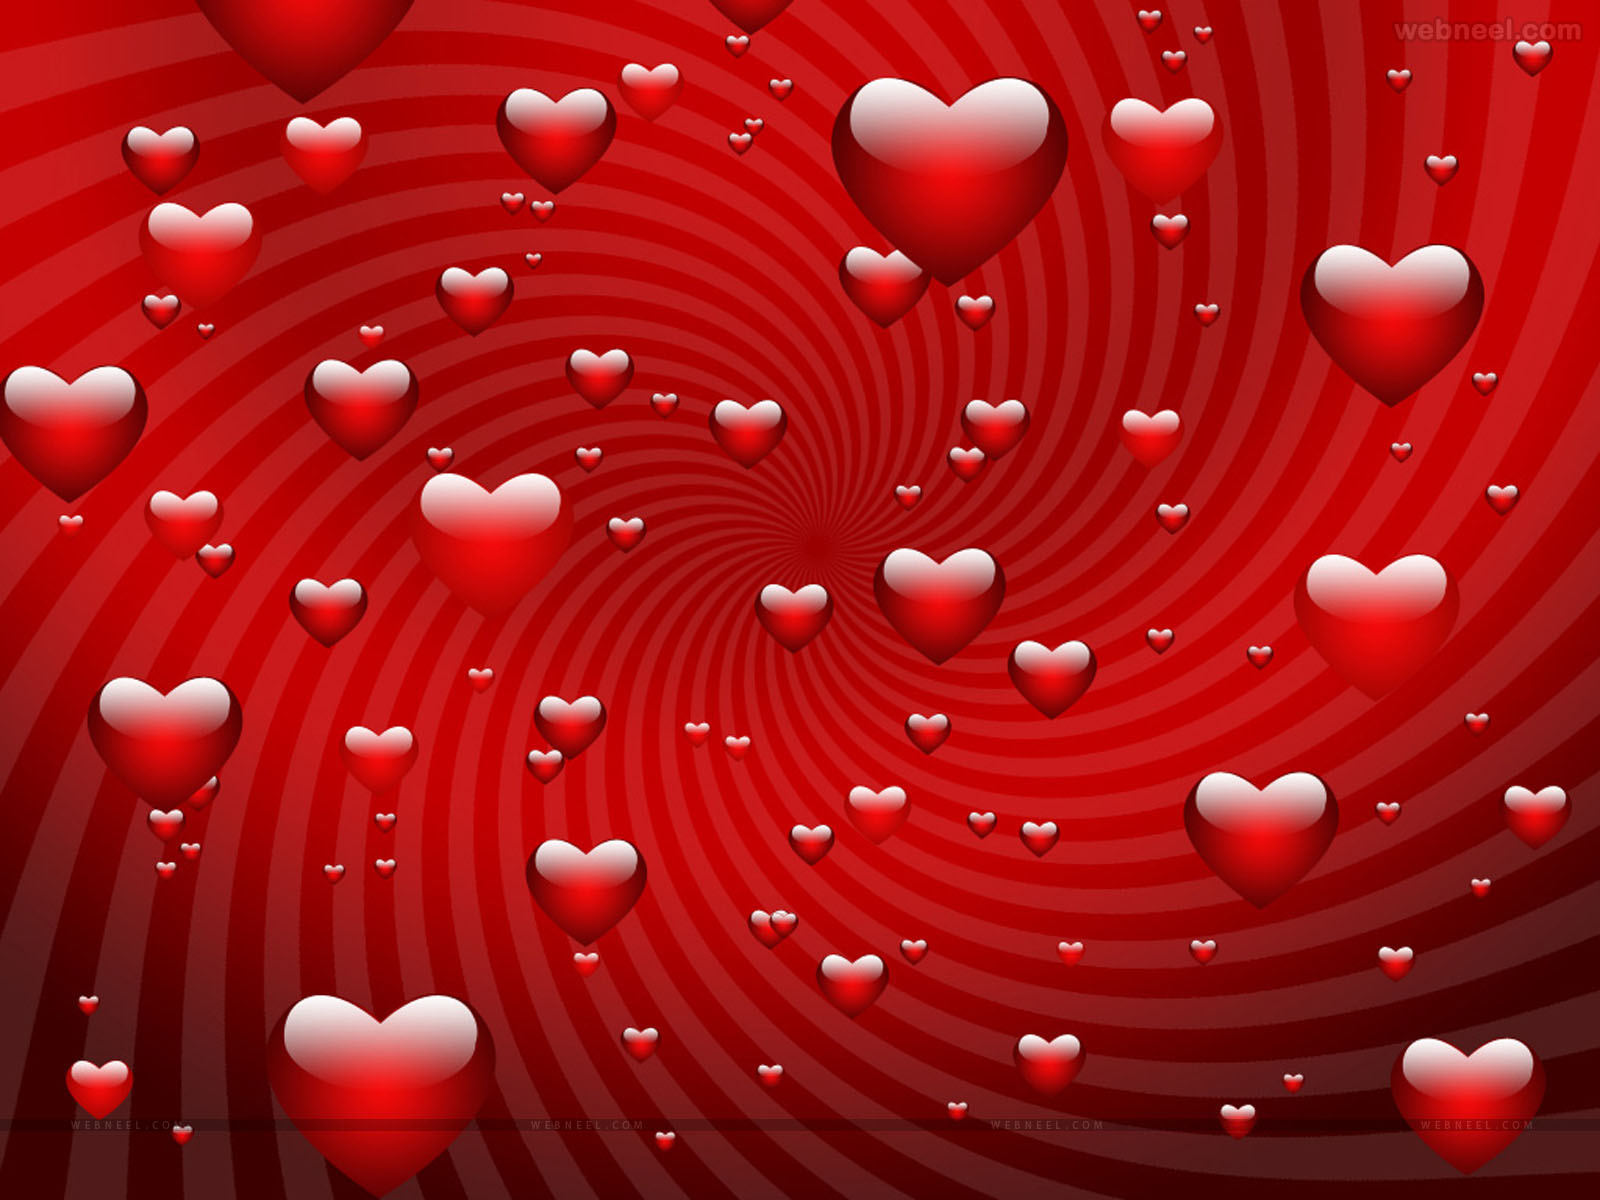 Wallpaper images - Valentines Day Wallpaper Valentines Day Wallpaper